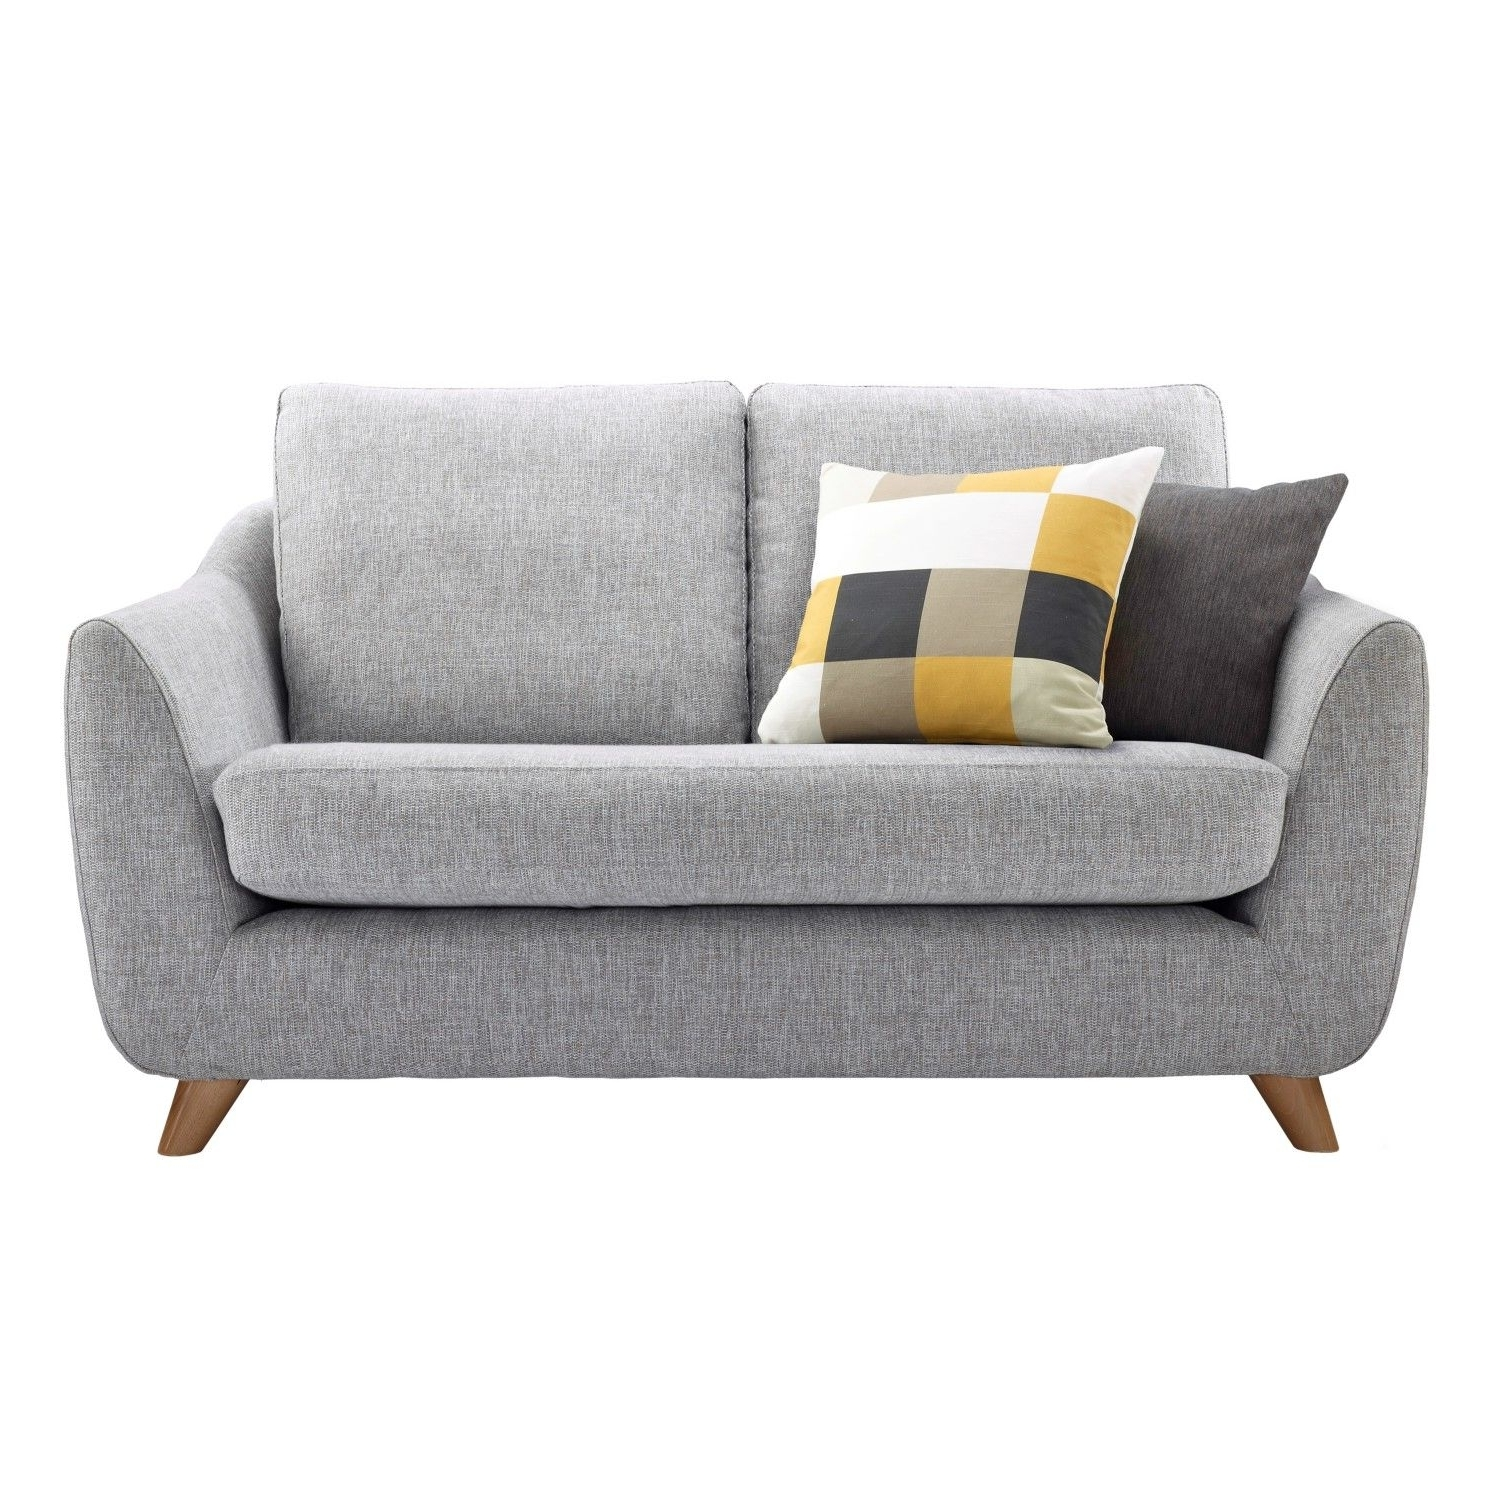 Preferred Loveseats For Small Spaces (View 6 of 20)